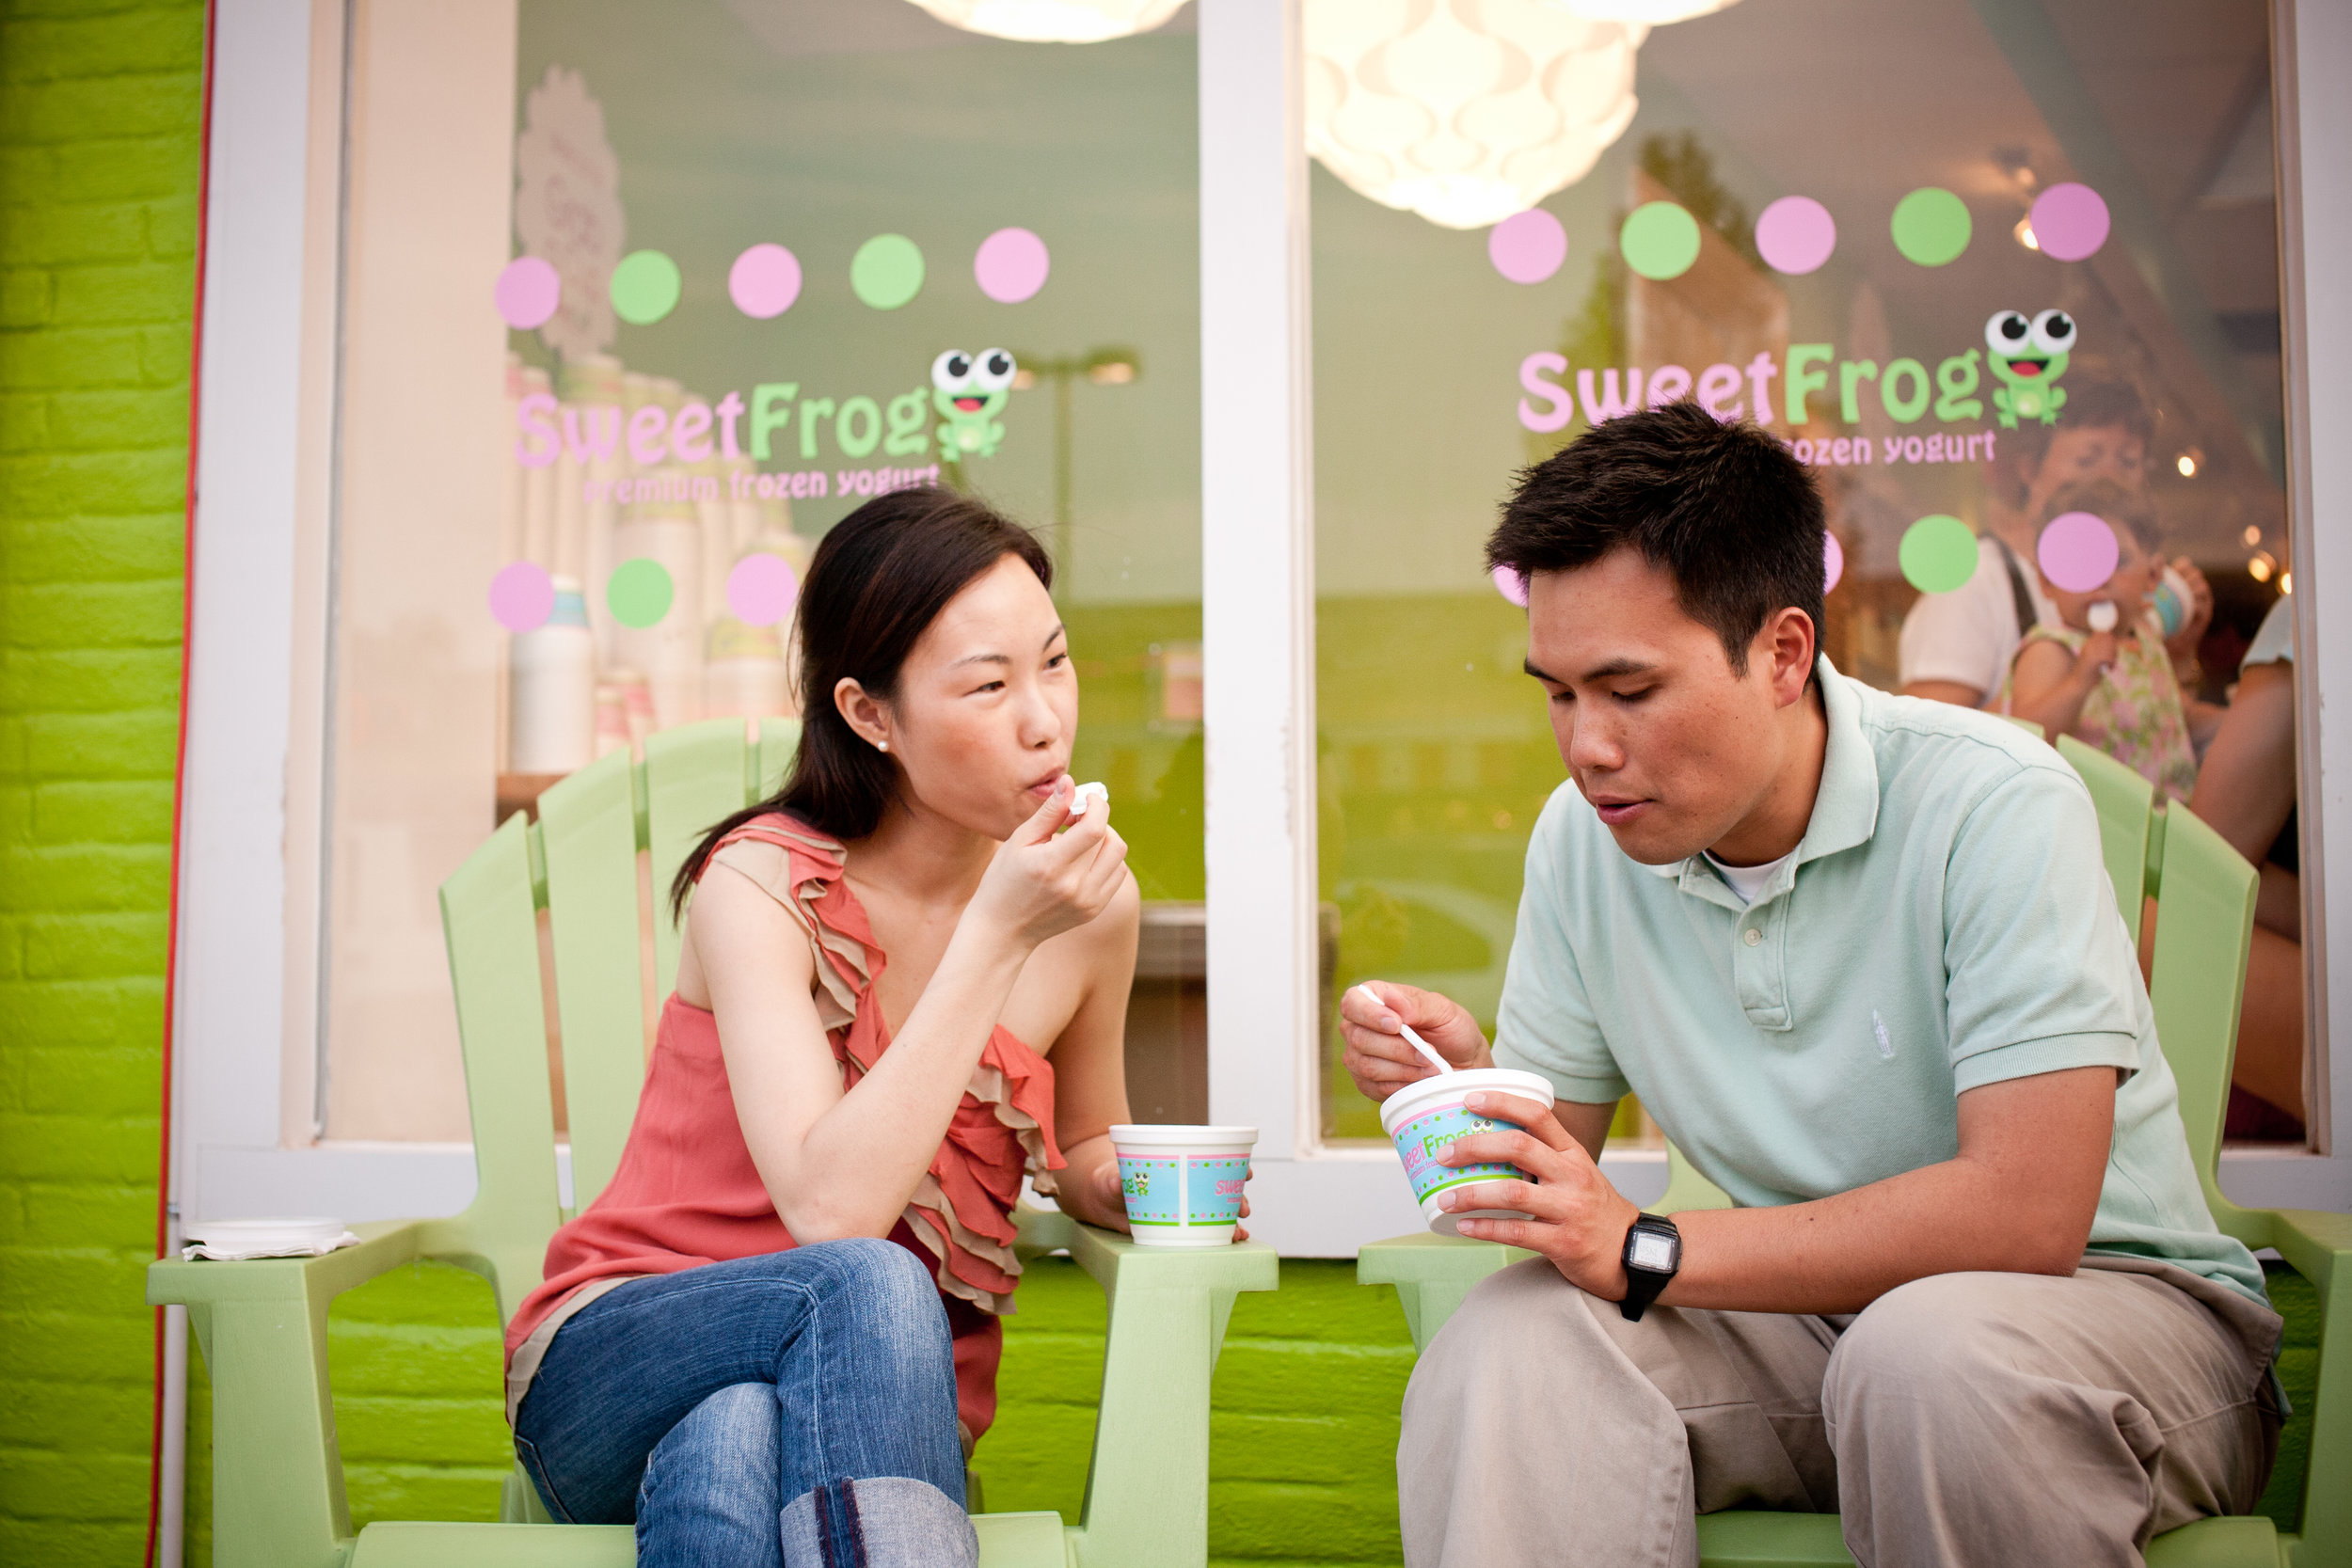 Sweet-Frog-Carytown-Engagements.jpg